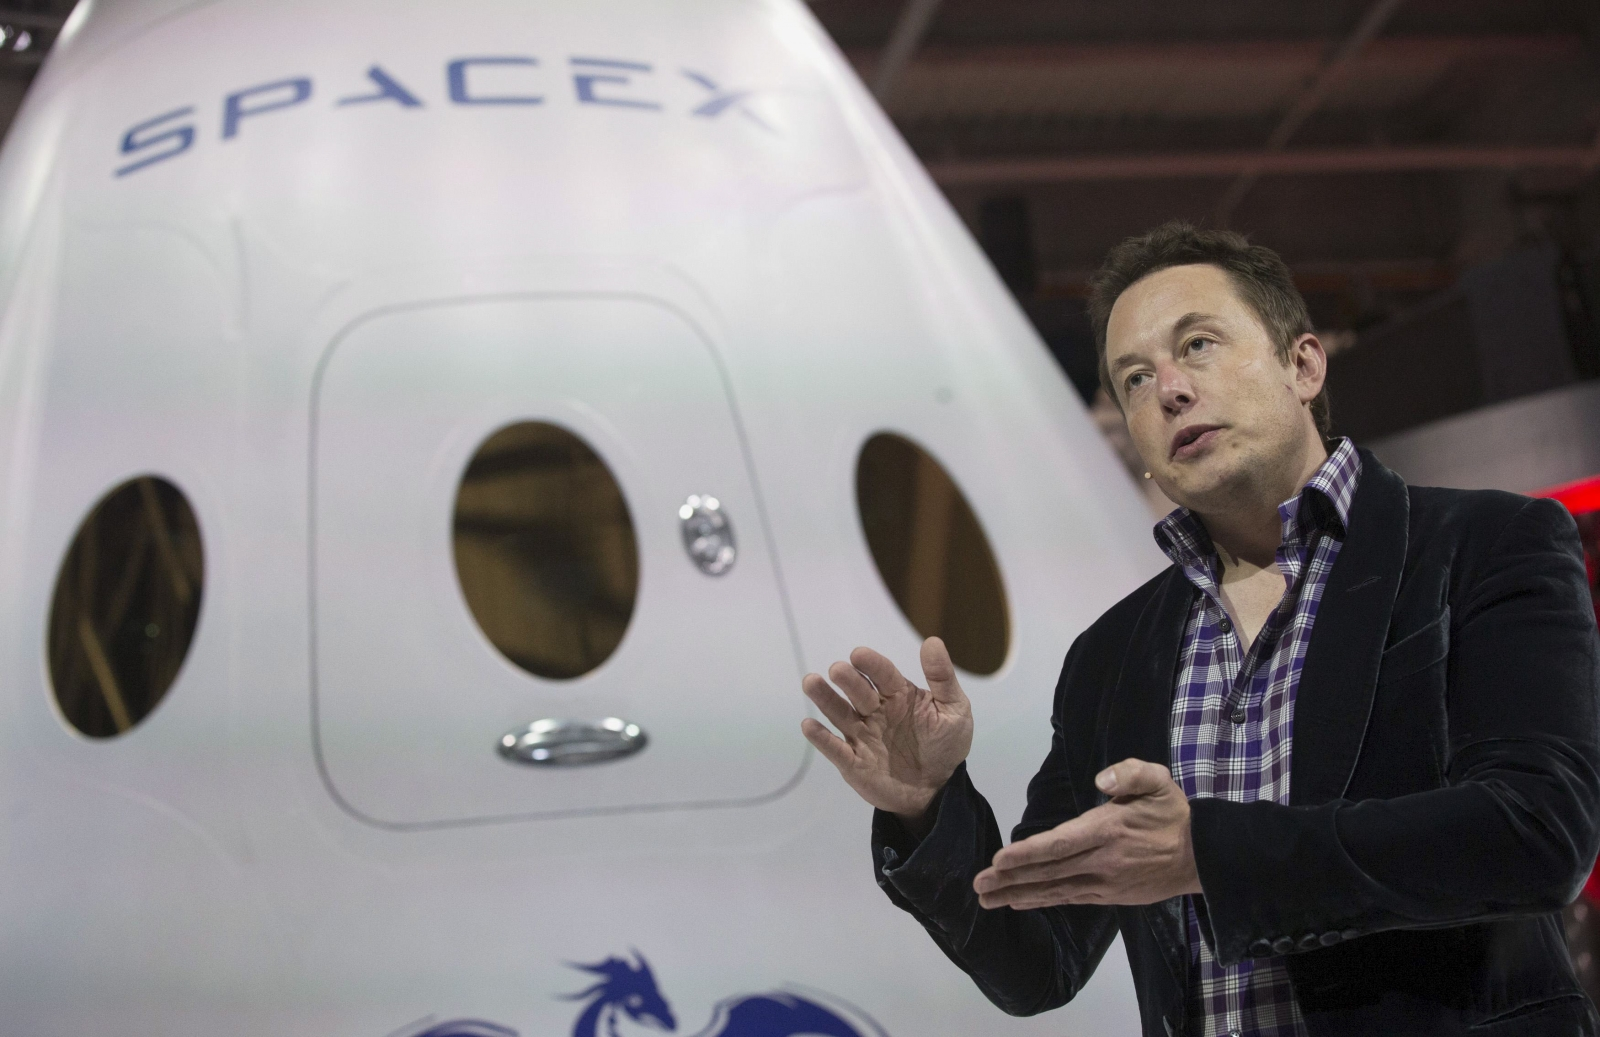 Elon Musk speaks at a SpaceX event